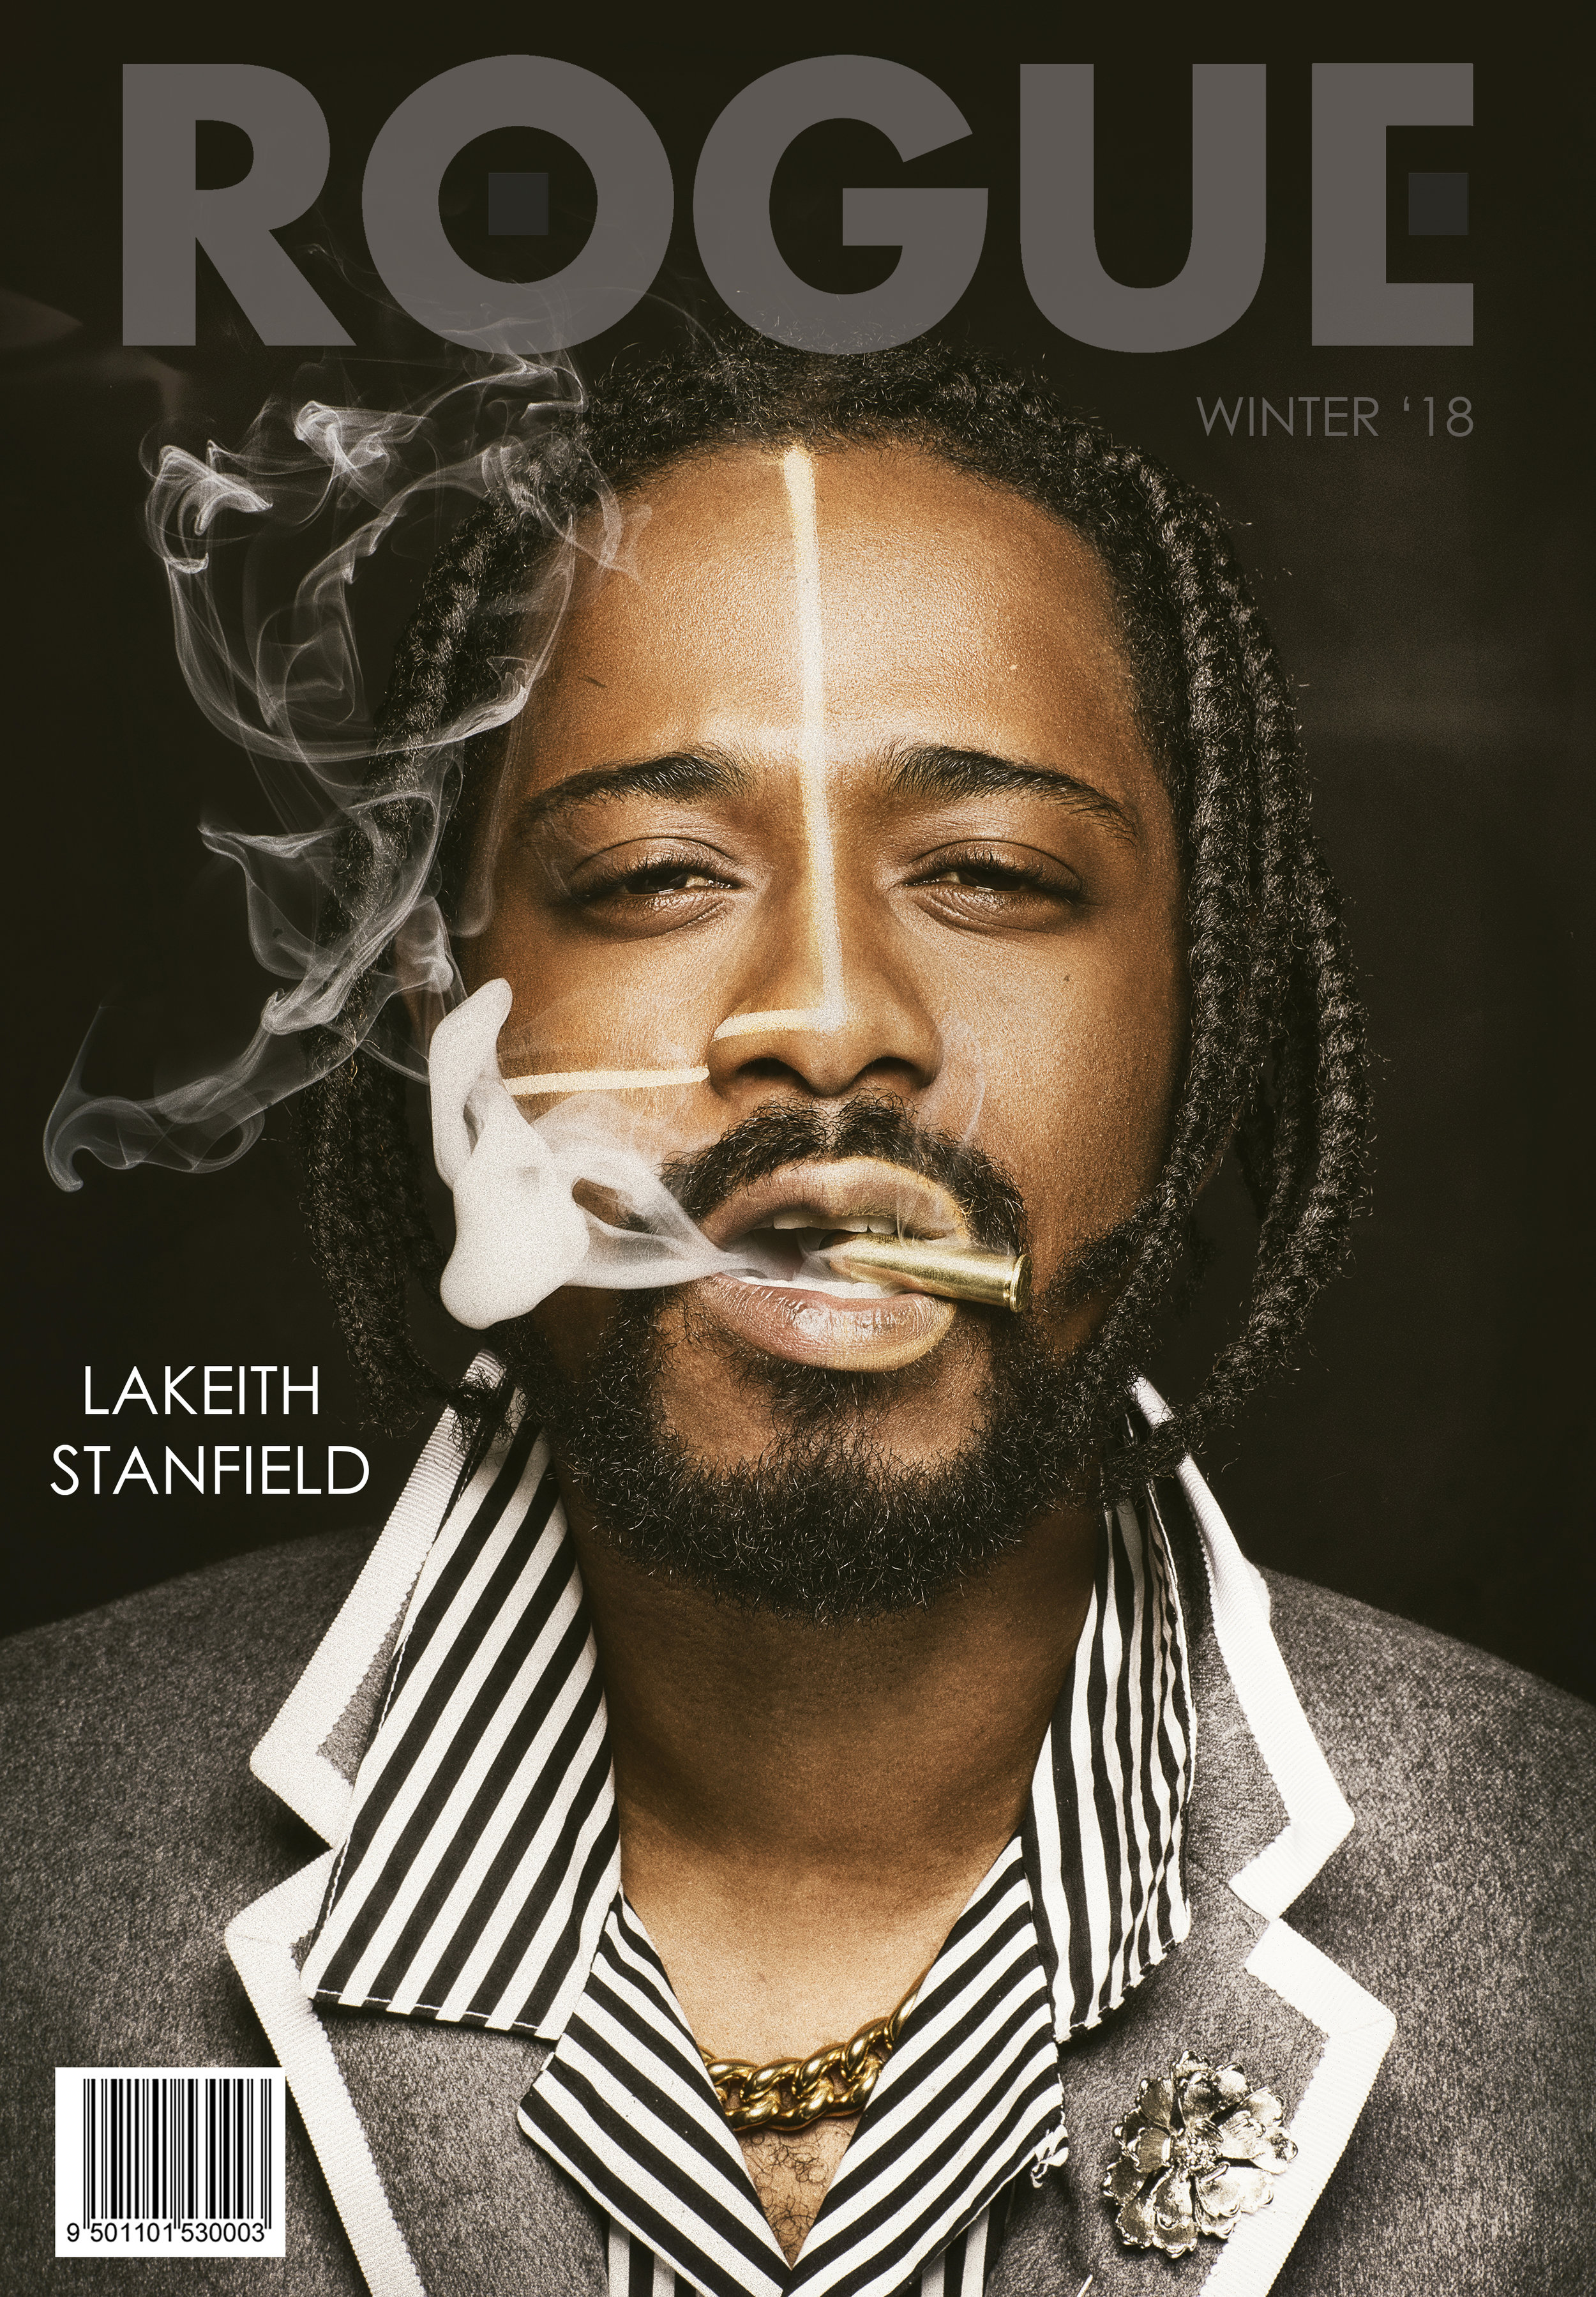 Cover Lakeith Stanfield.jpg